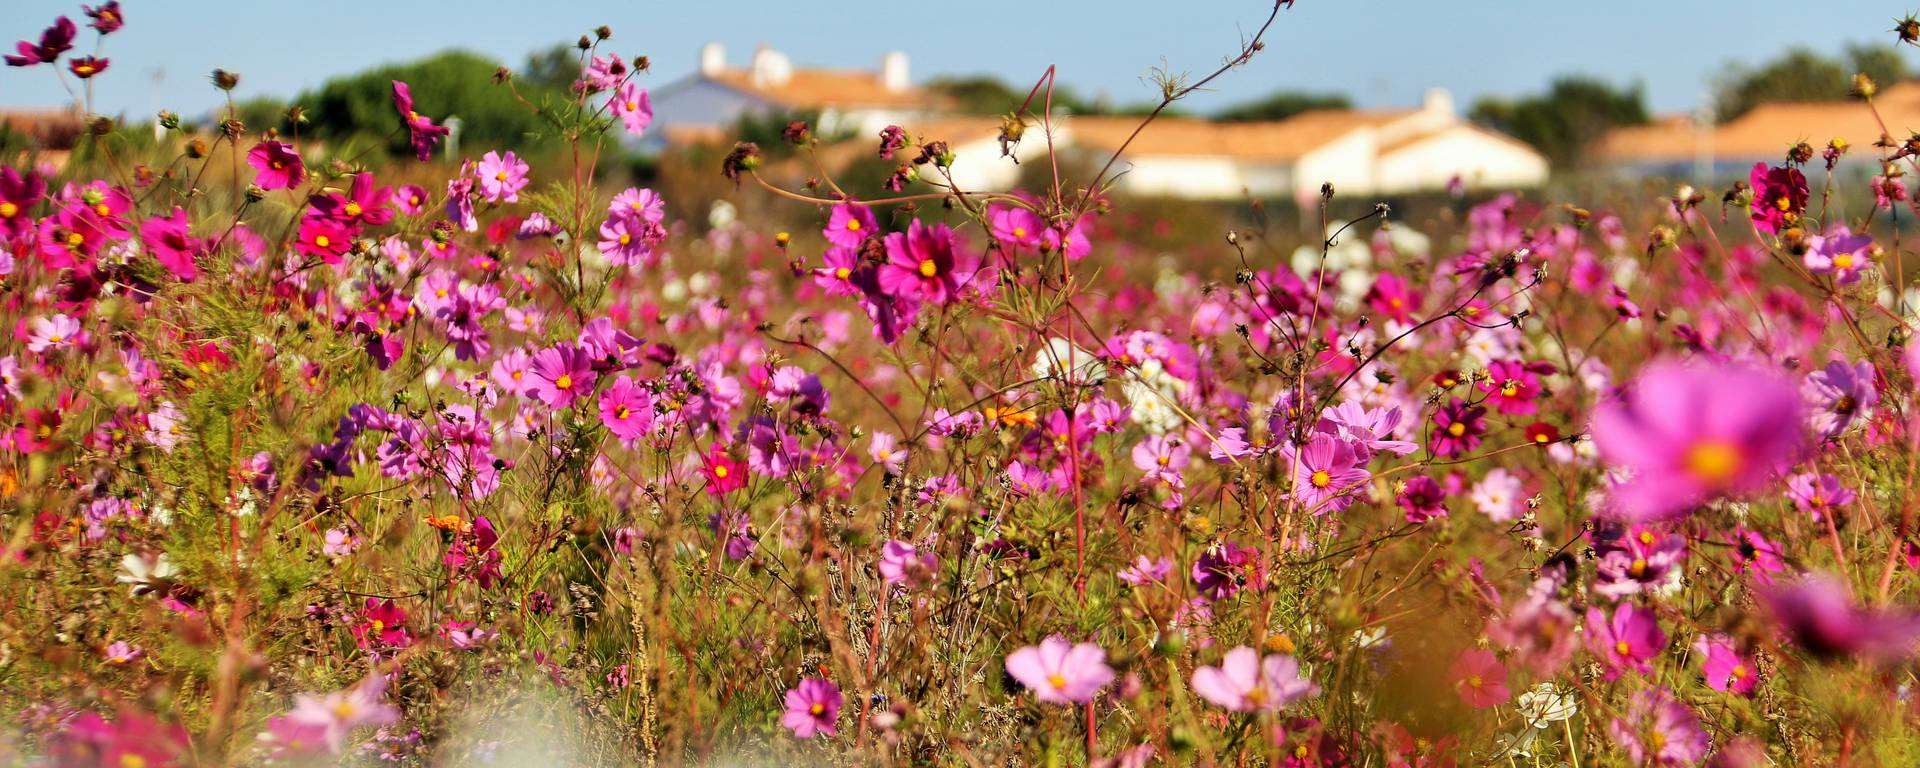 The wild flowers of Ile de Ré by Lesley Williamson